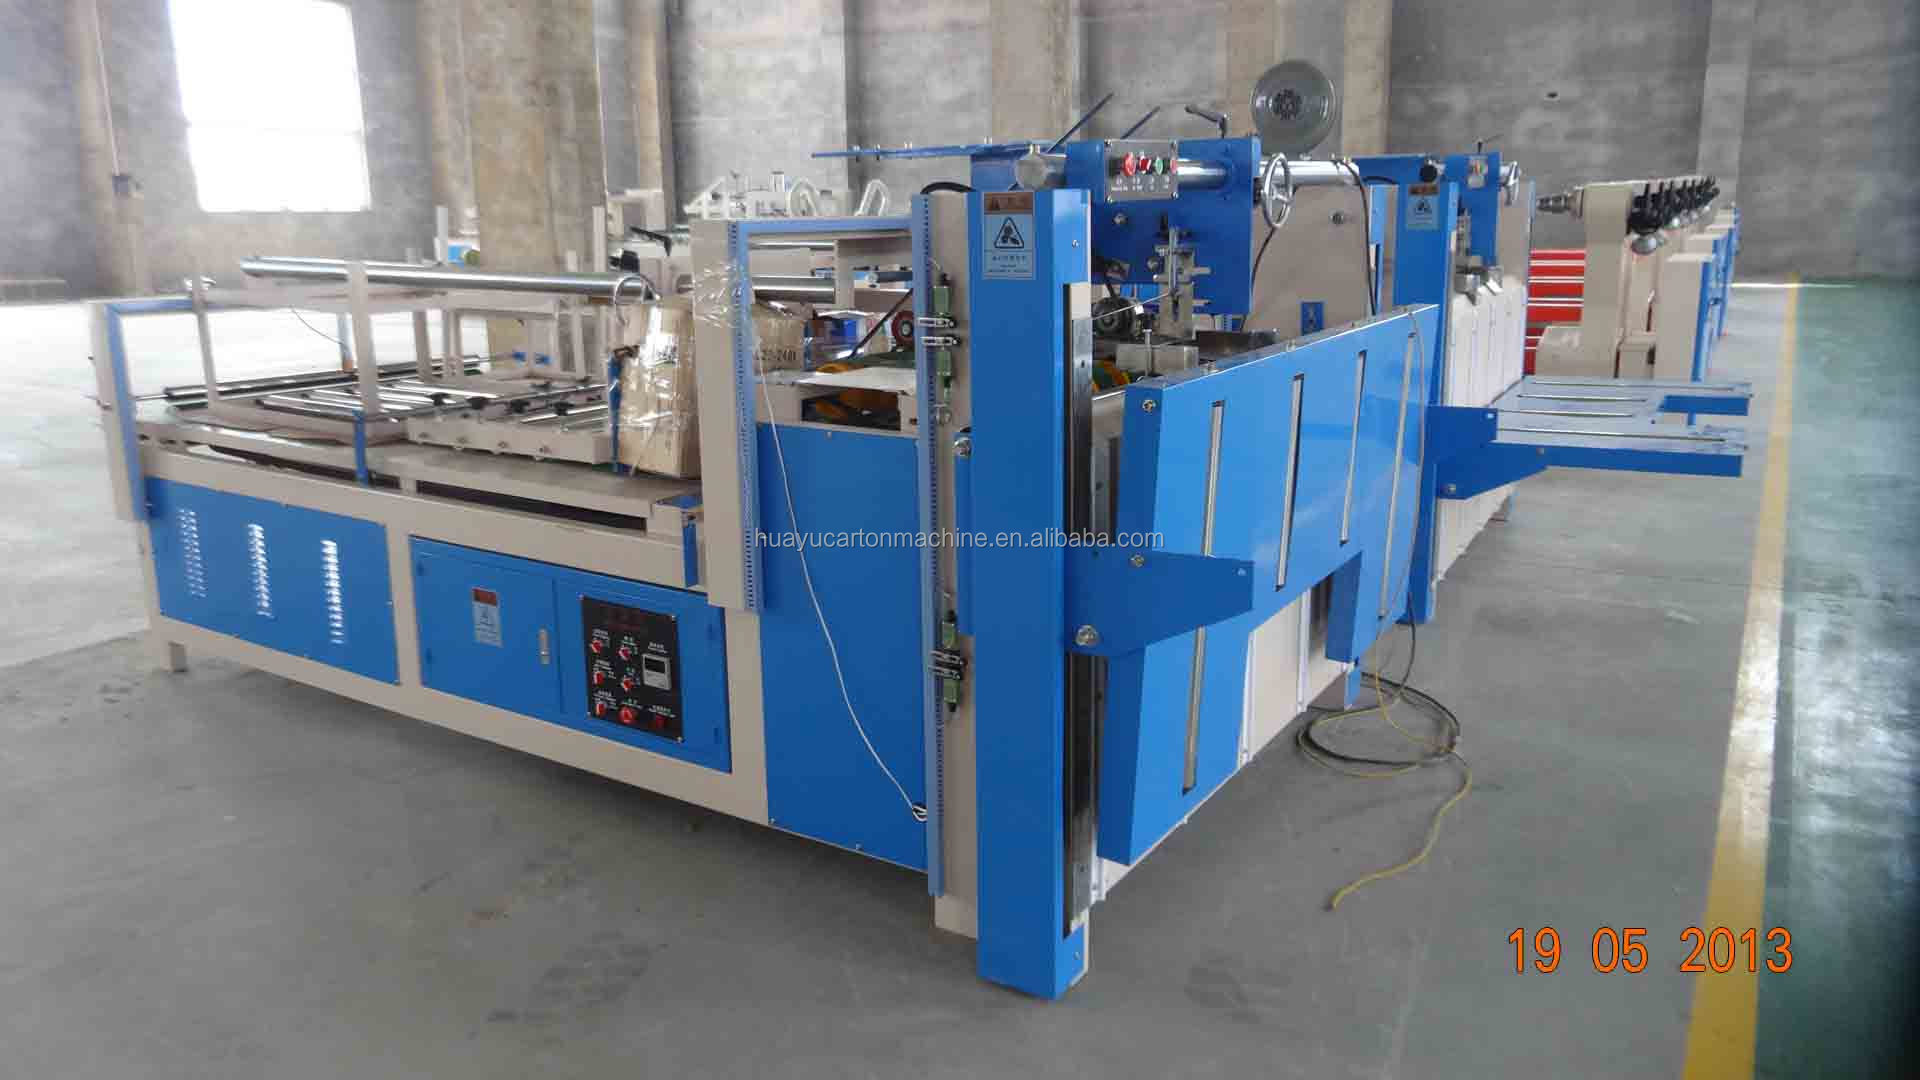 Semi-auto carton folder gluer machine, carton box flap gluing machine